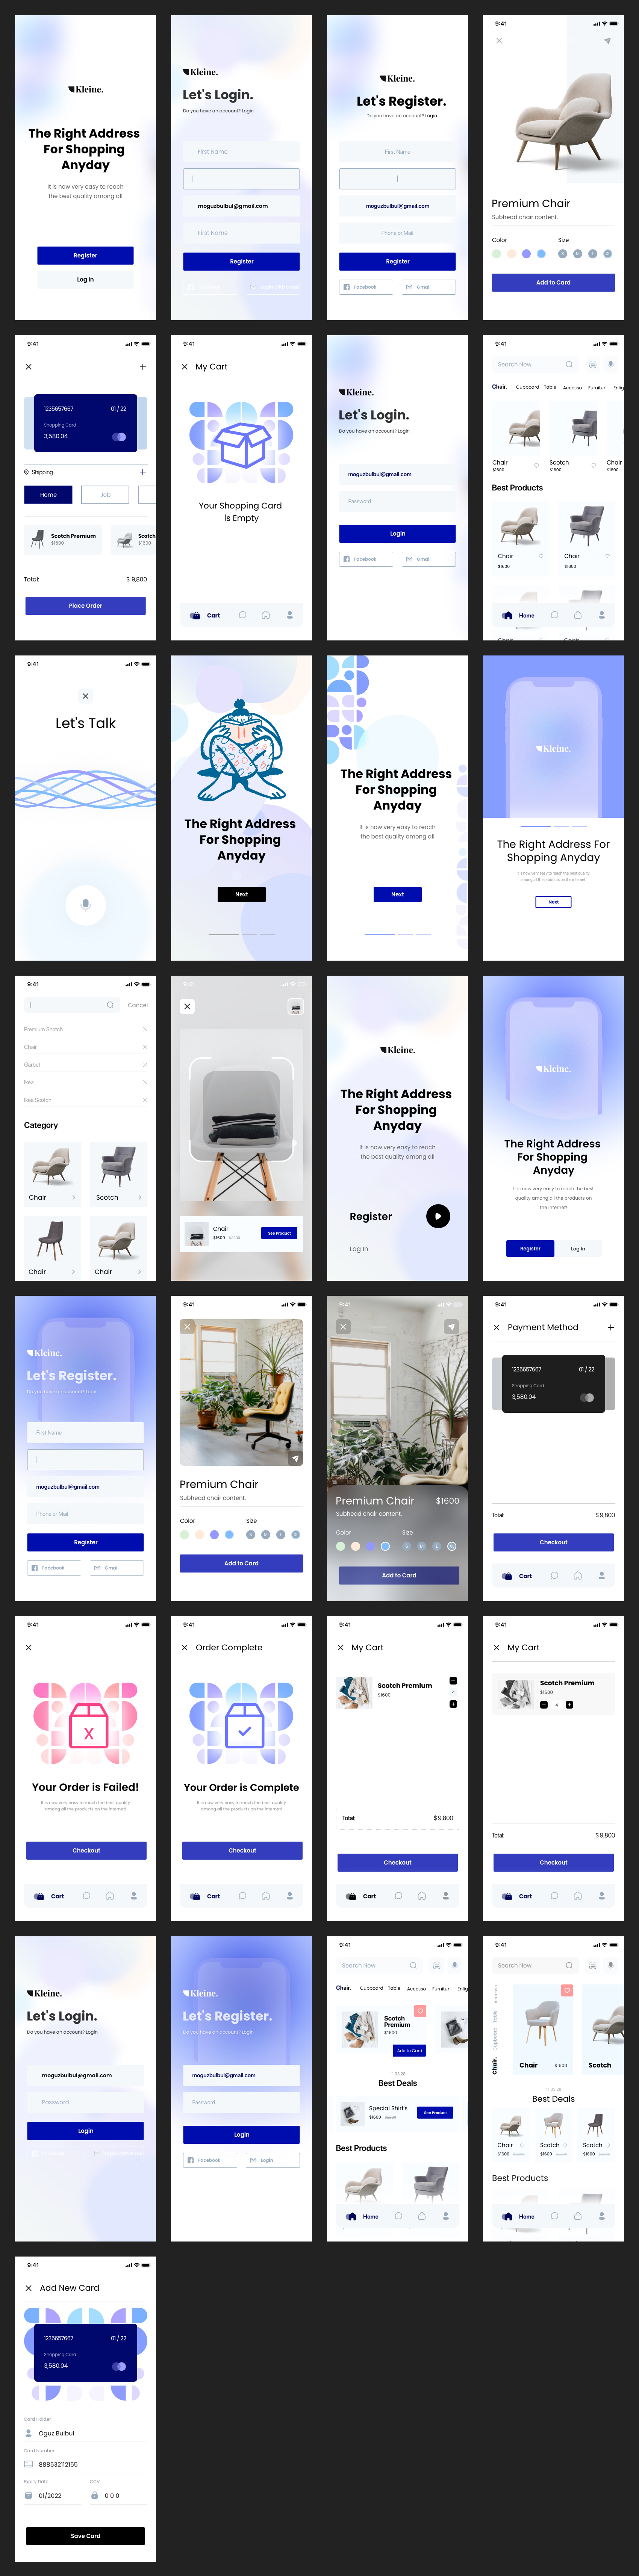 Kleine Free eCommerce UI Kit for Adobe XD - Kleine is free mobile UI Kit designed exclusively for Adobe XD. It features 30+ mobile screen pages to get you started on your projects.